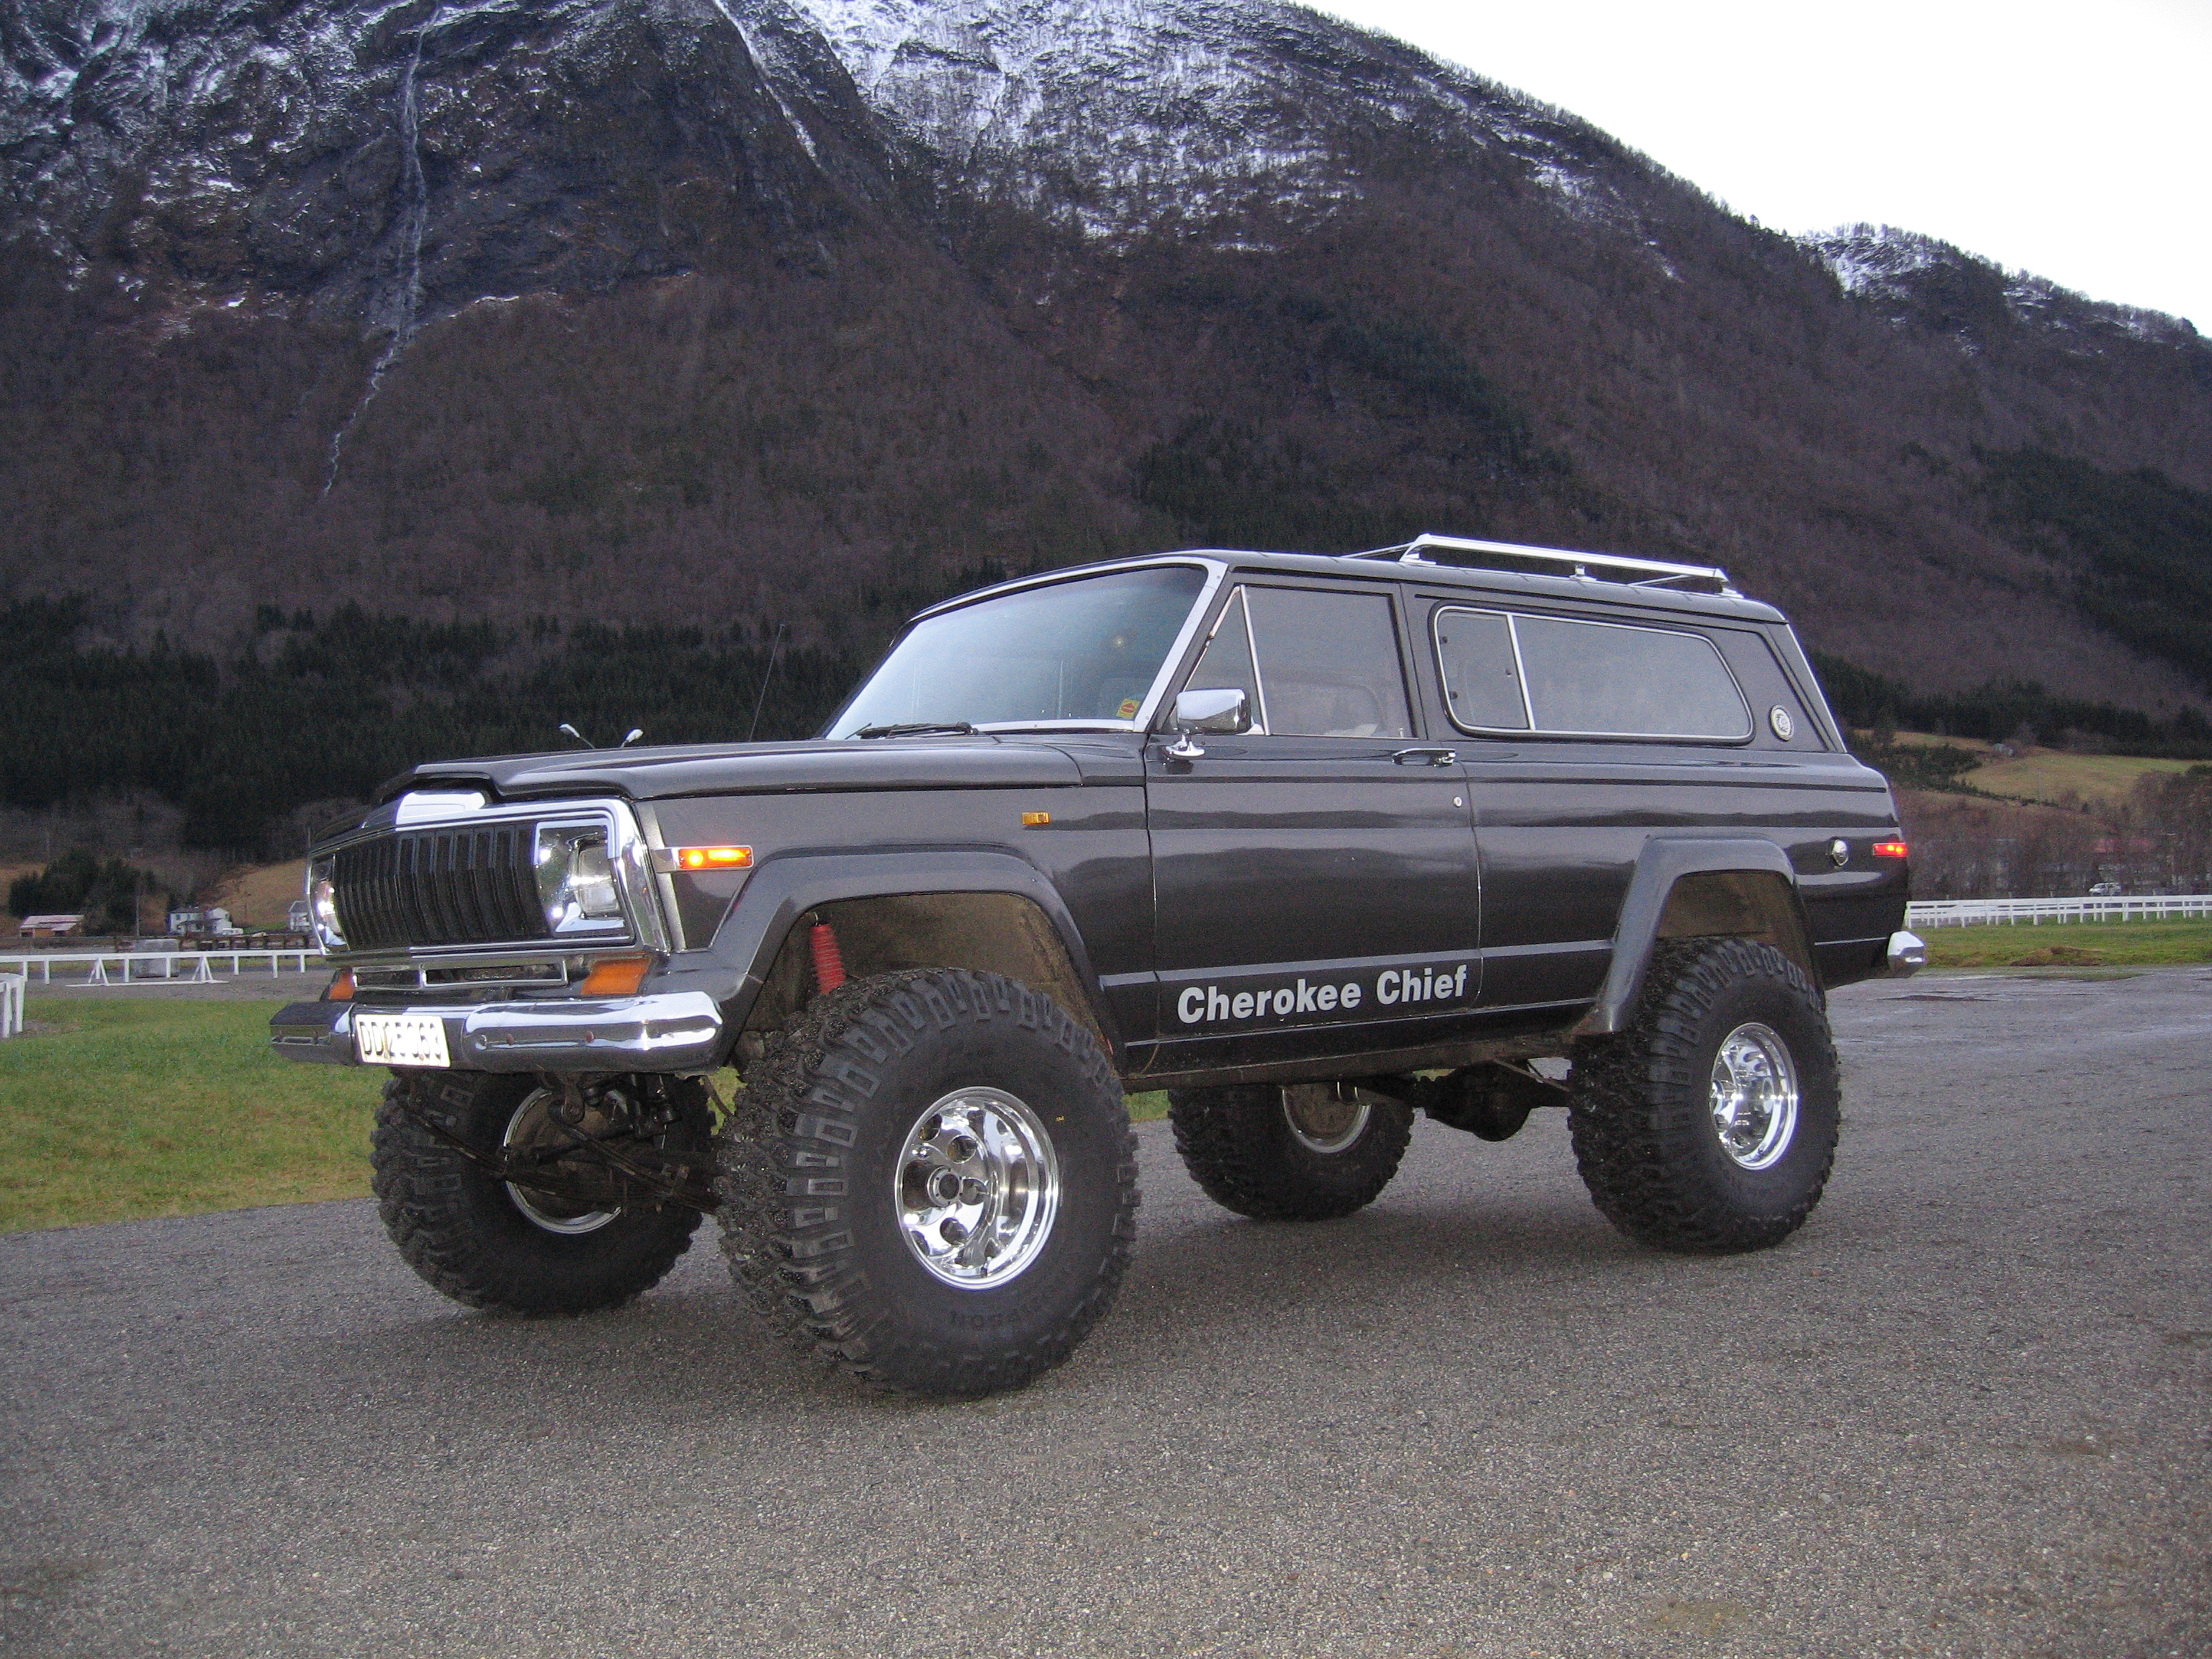 Jeep Cherokee Chief technical details, history, photos on ...